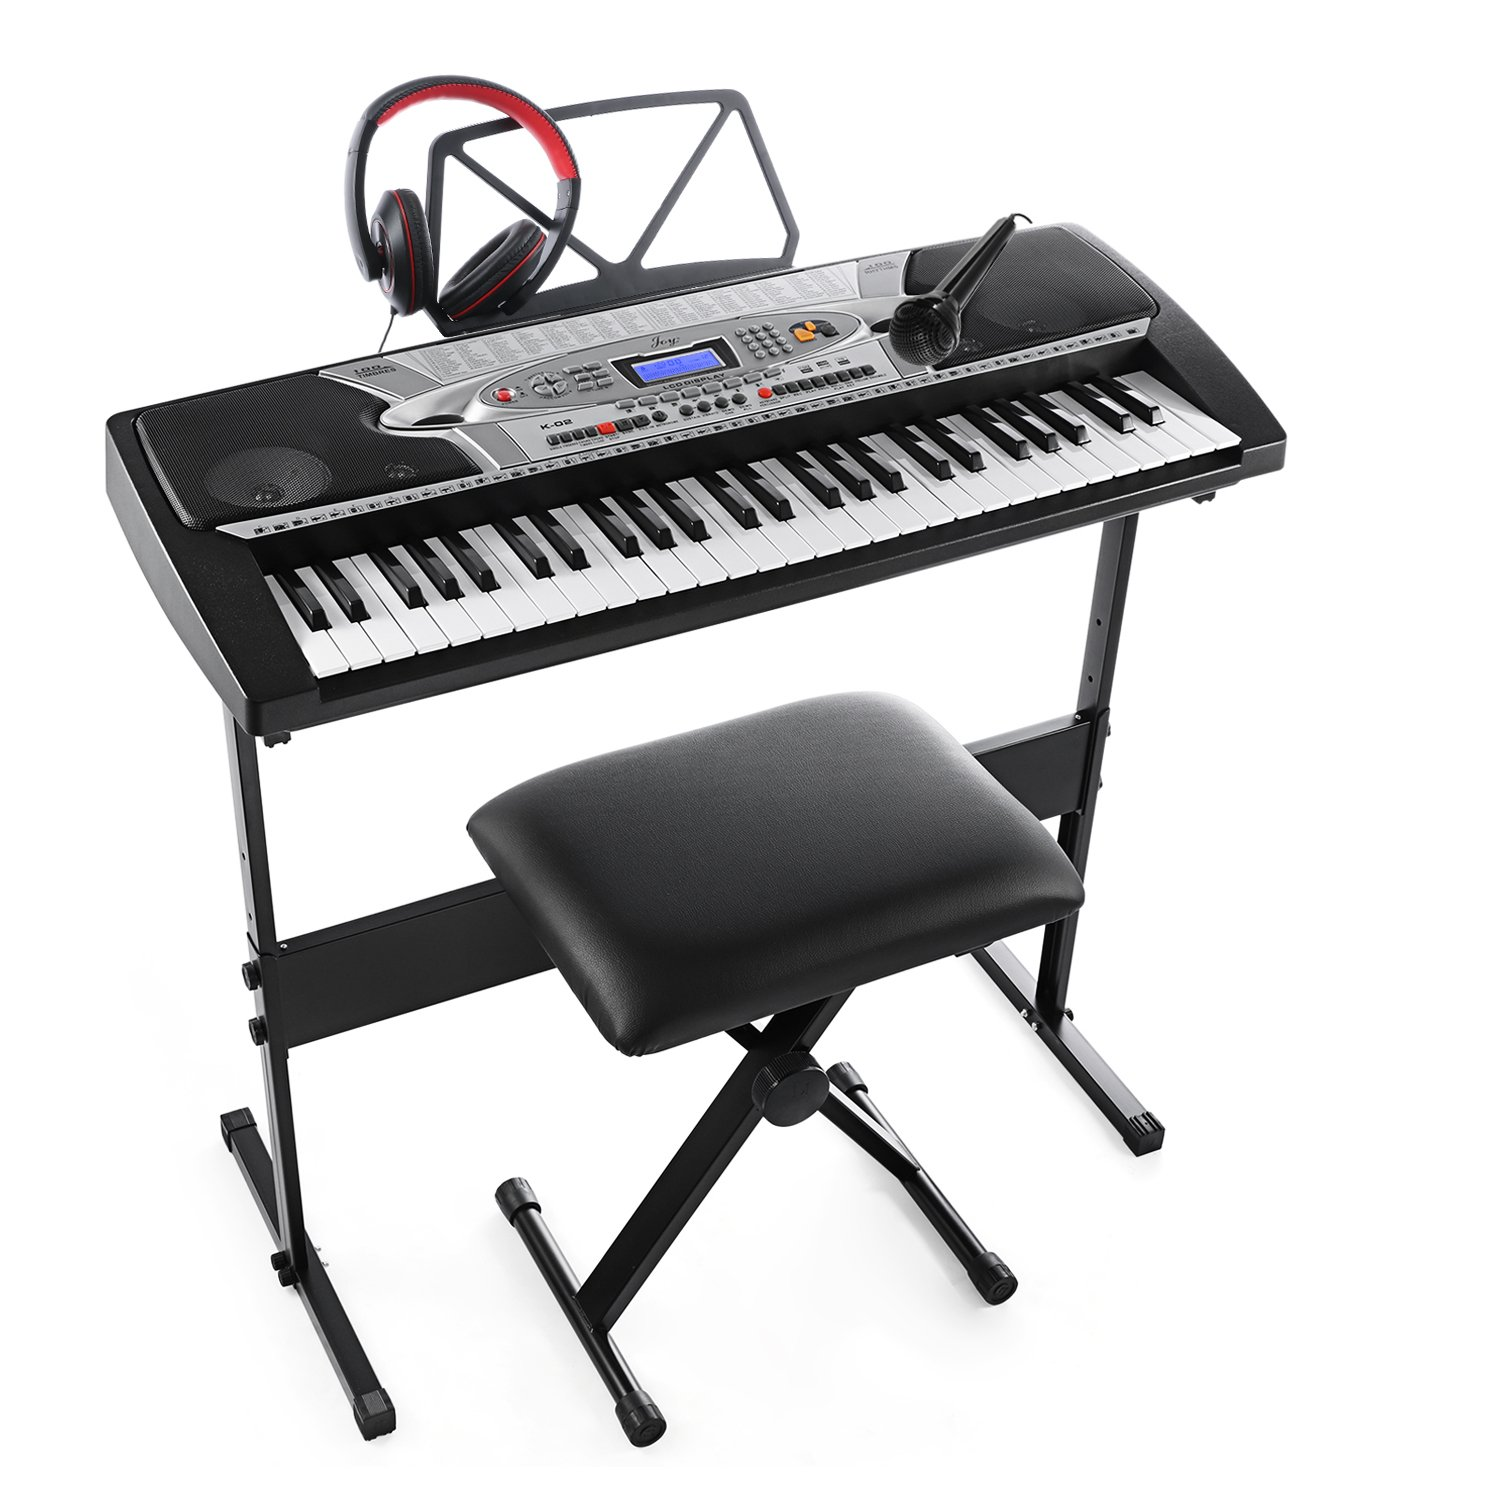 Joy K-02 54-Key With LCD Screen Electronic Keyboard Starter Pack for Beginners with Microphone, Headphone, Stand, Stool, and Power Supply CHINA JOY KEYBOARDS CO. LTD K-02-KIT